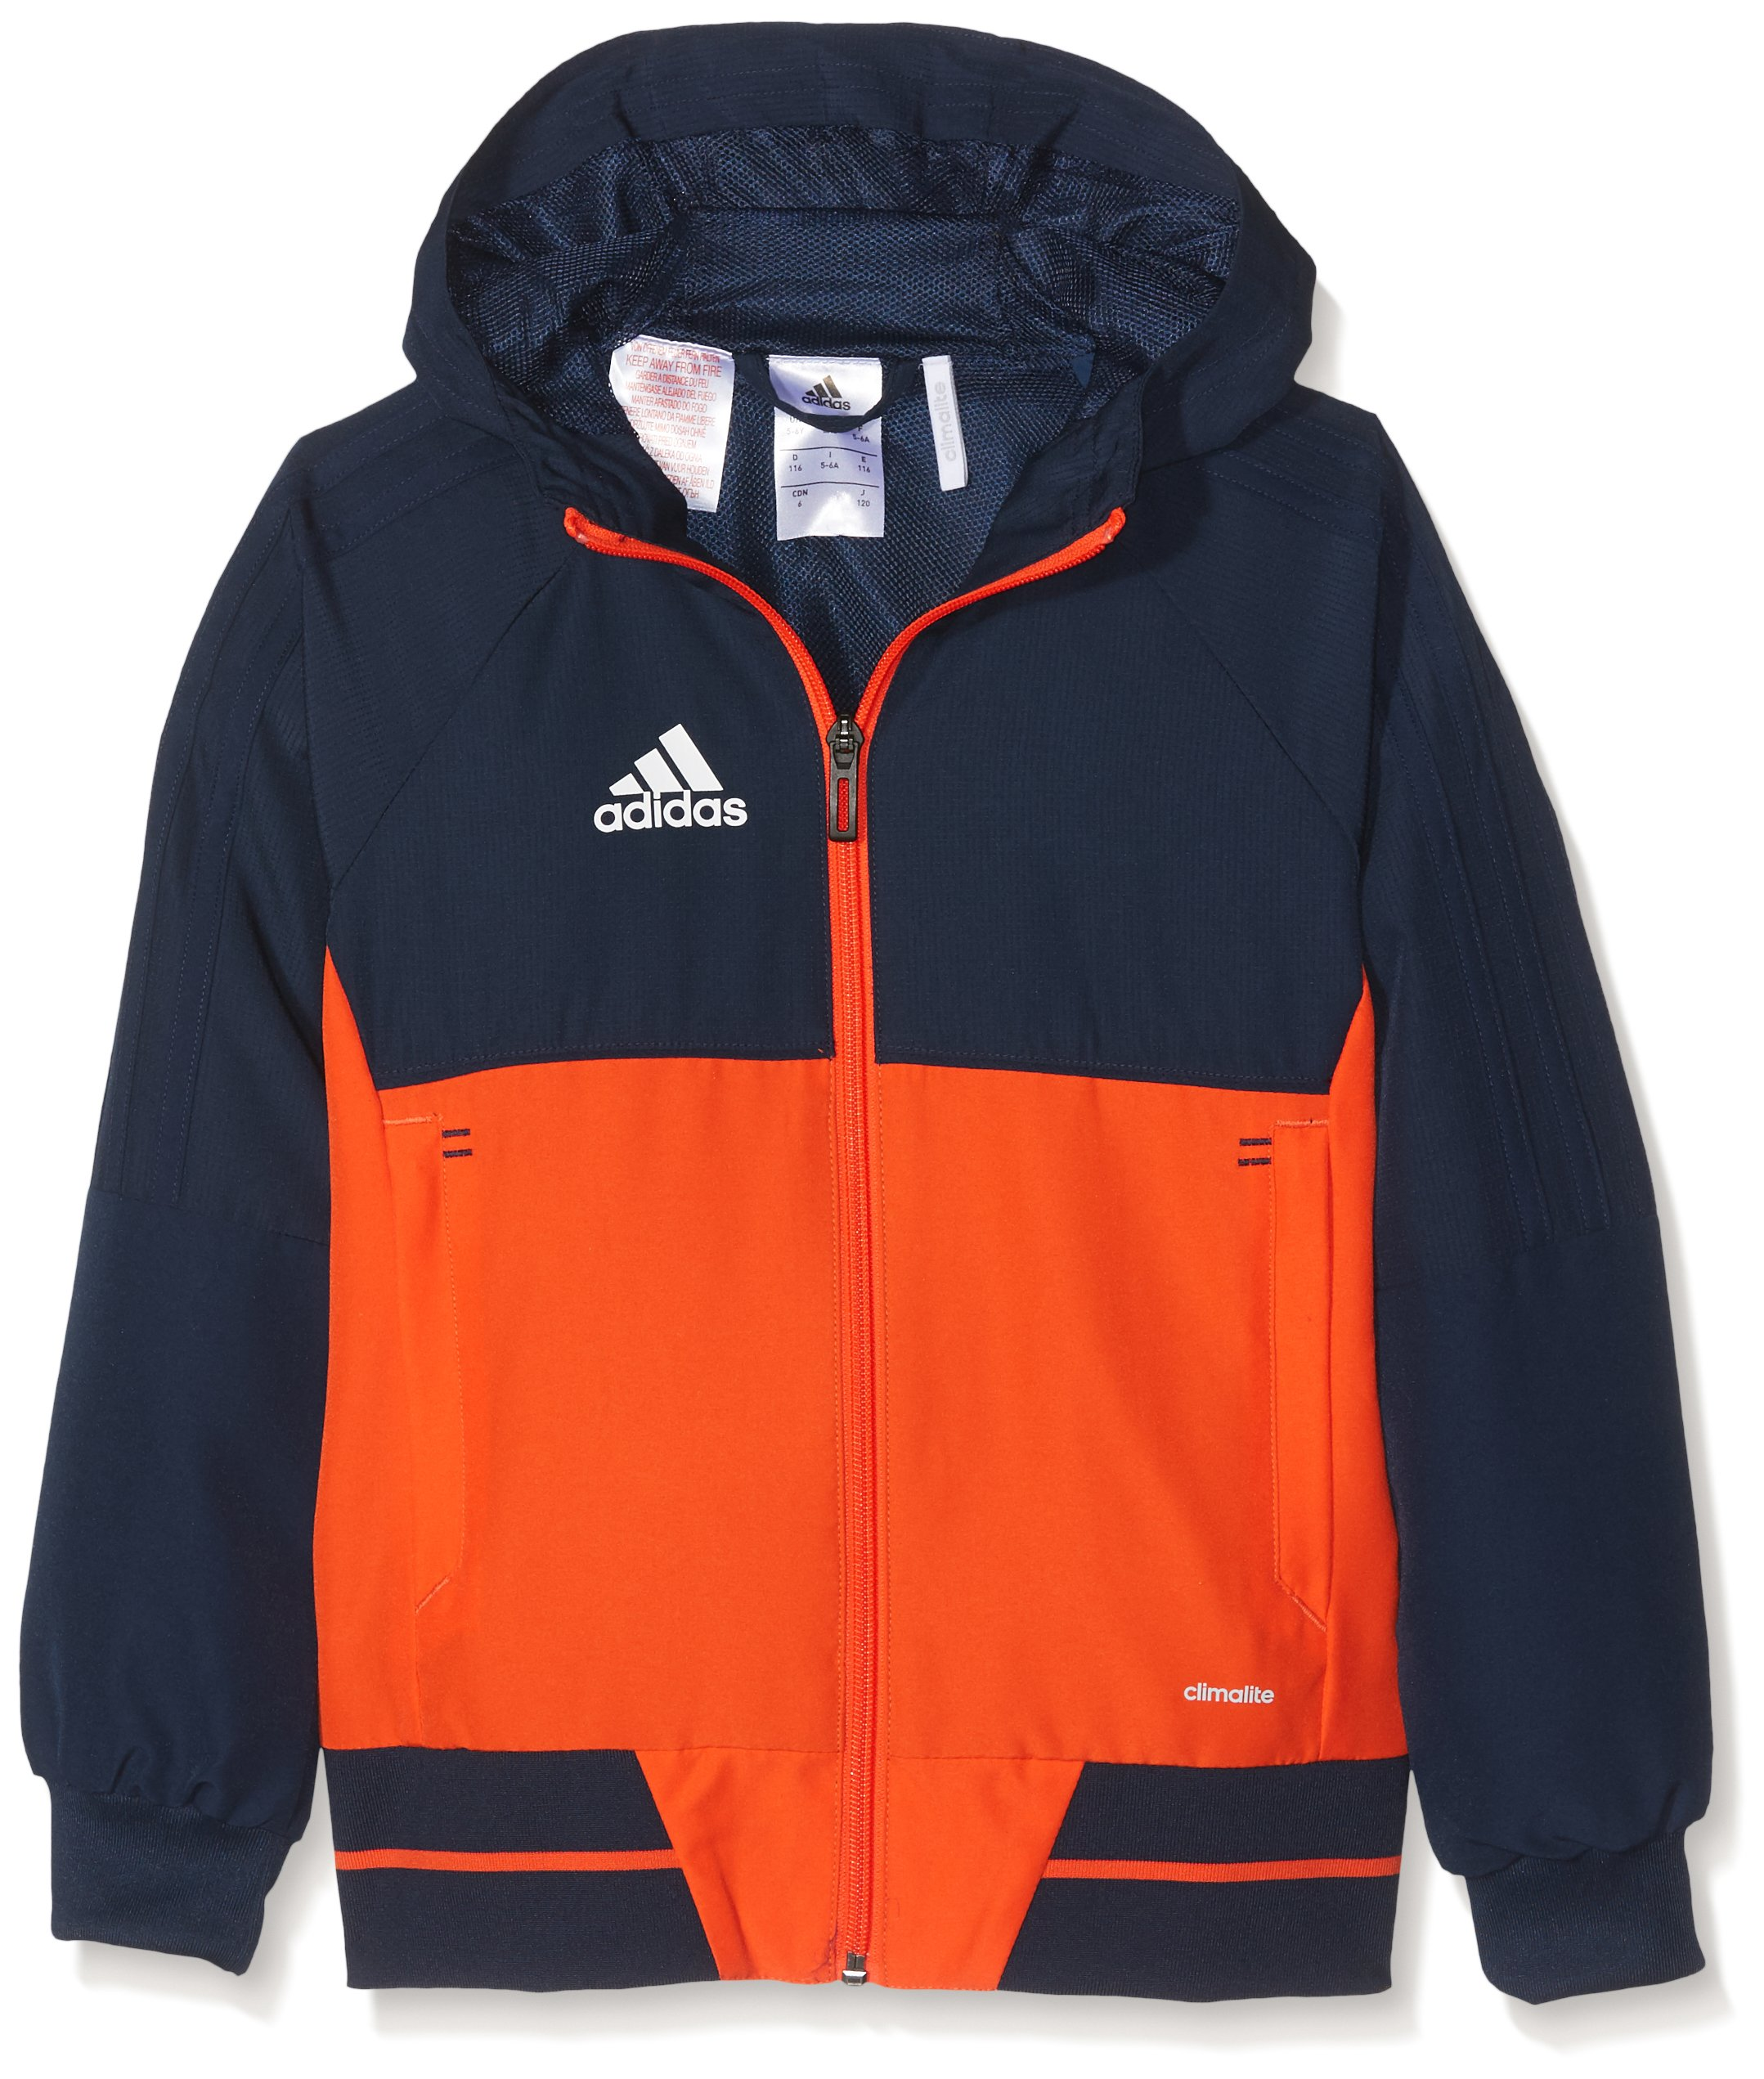 adidas Tiro 17 Plain Presentation Jacket - Youth - Navy/Orange - Age 11-12